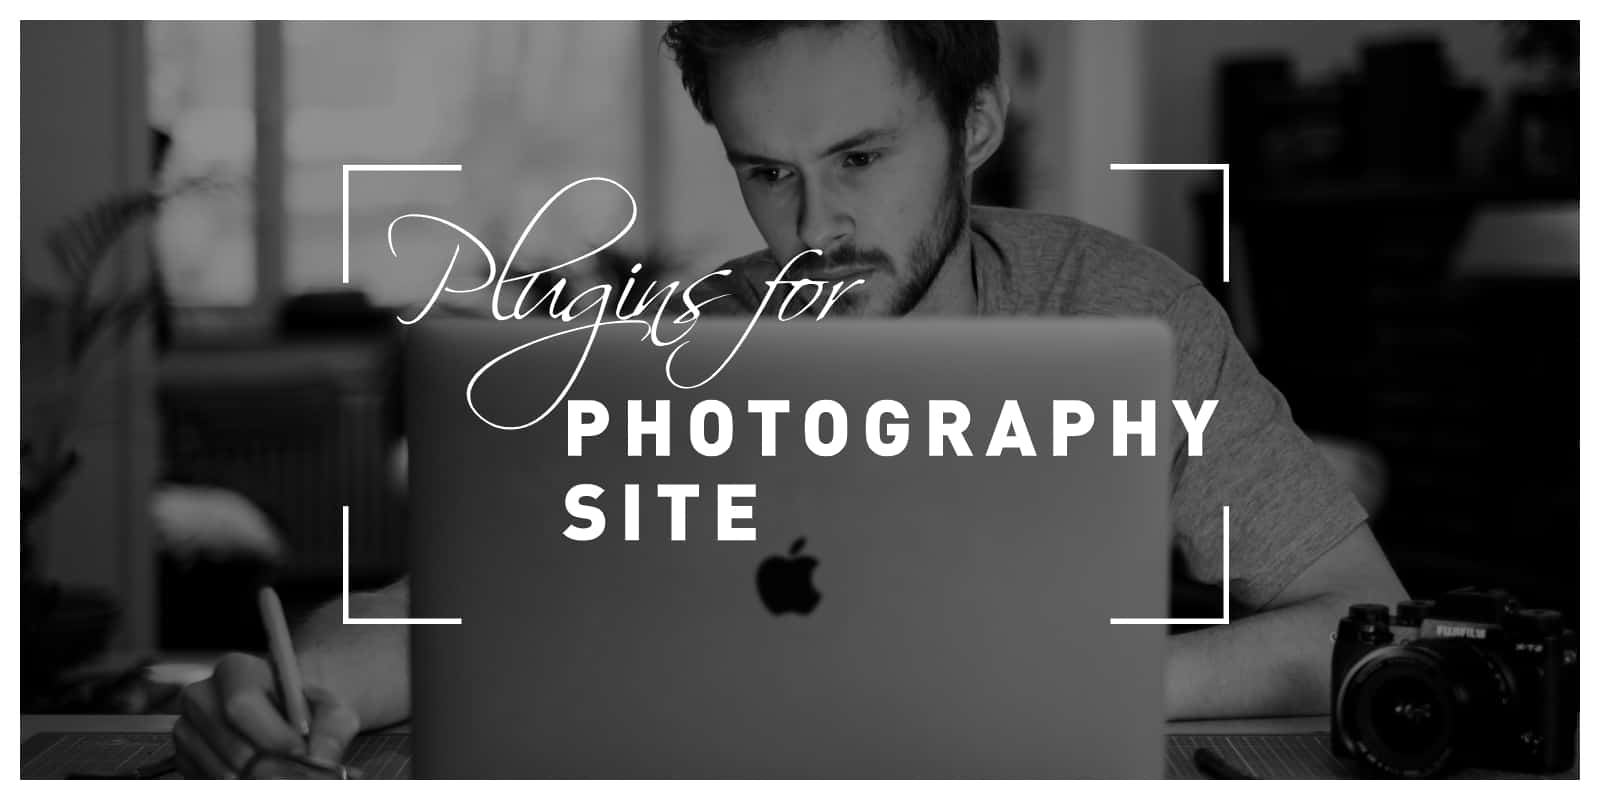 Plugins for Photography site